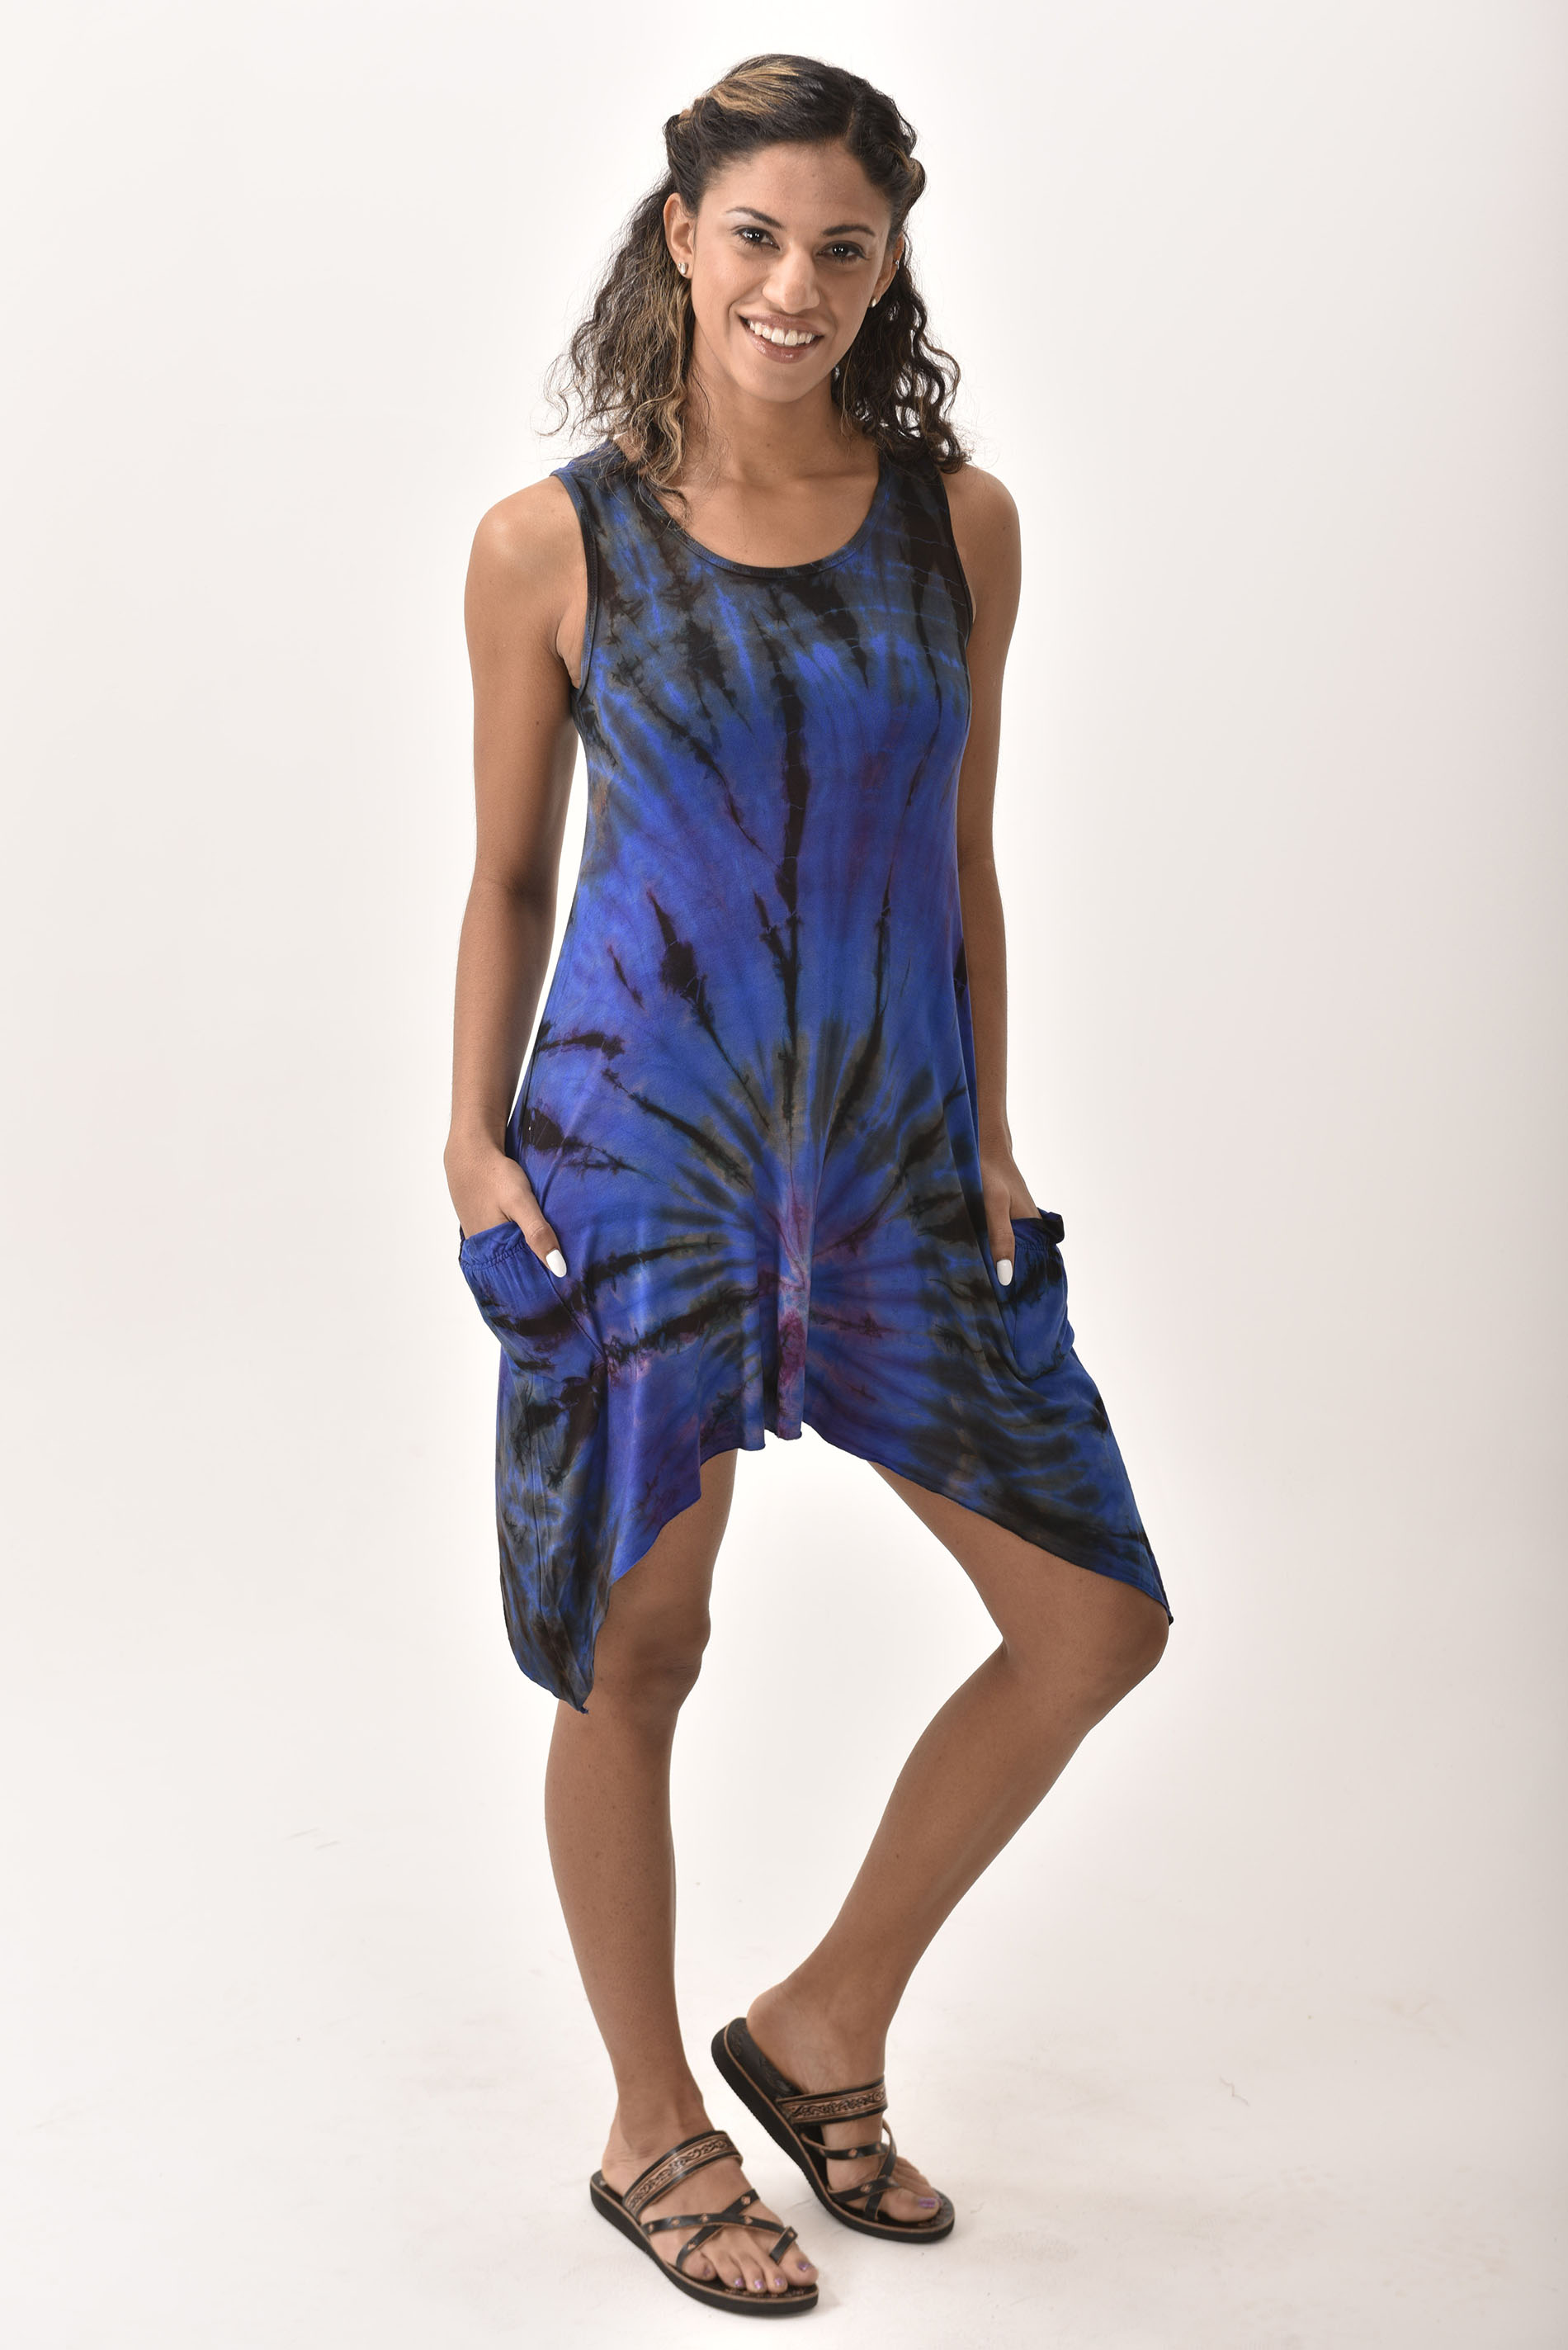 Pocket Sundress, Hand Painted Tie Dye, Blue Taupe Multi